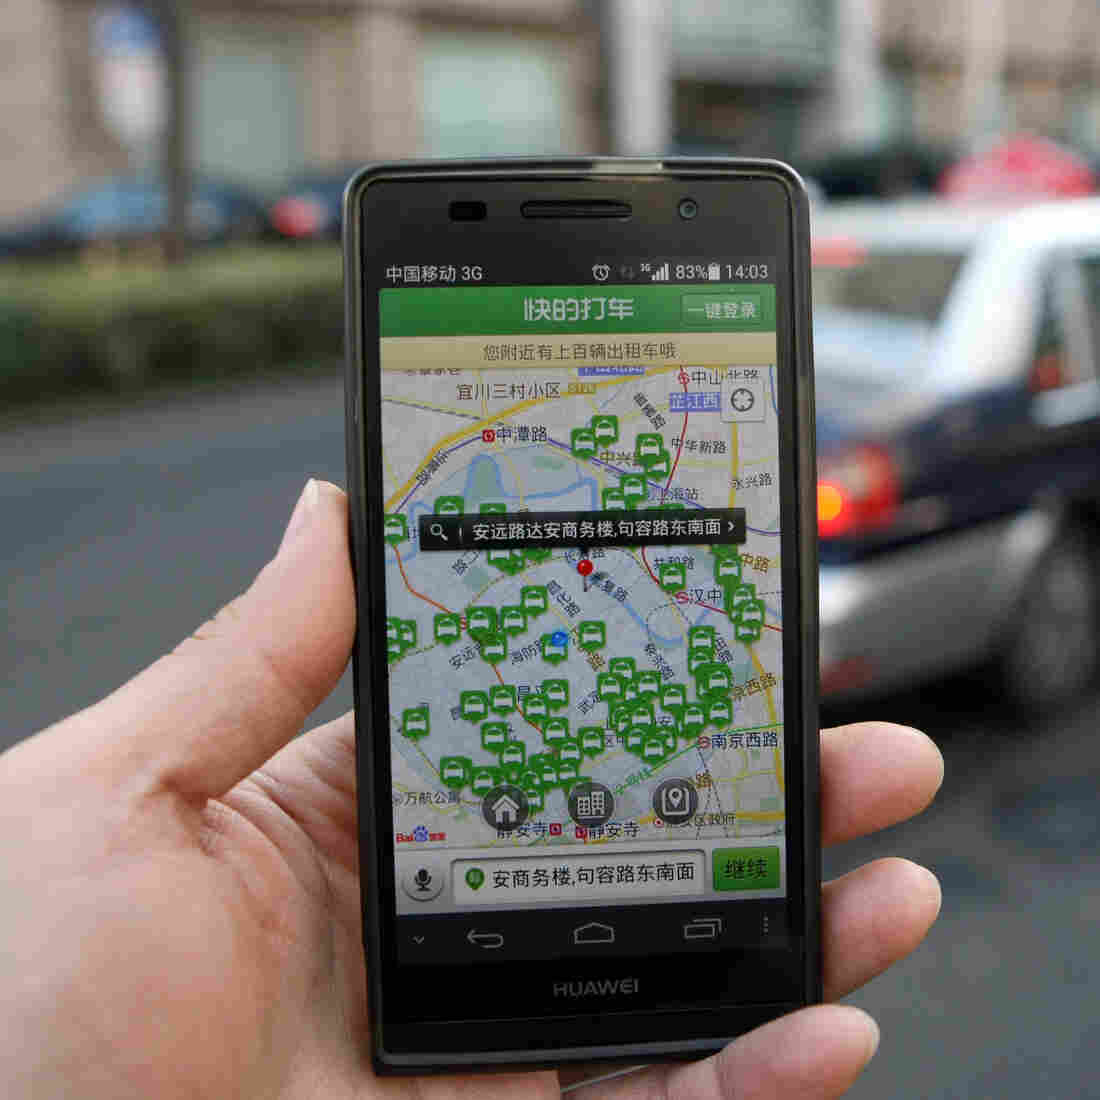 What A Ban On Taxi Apps In Shanghai Says About China's Economy